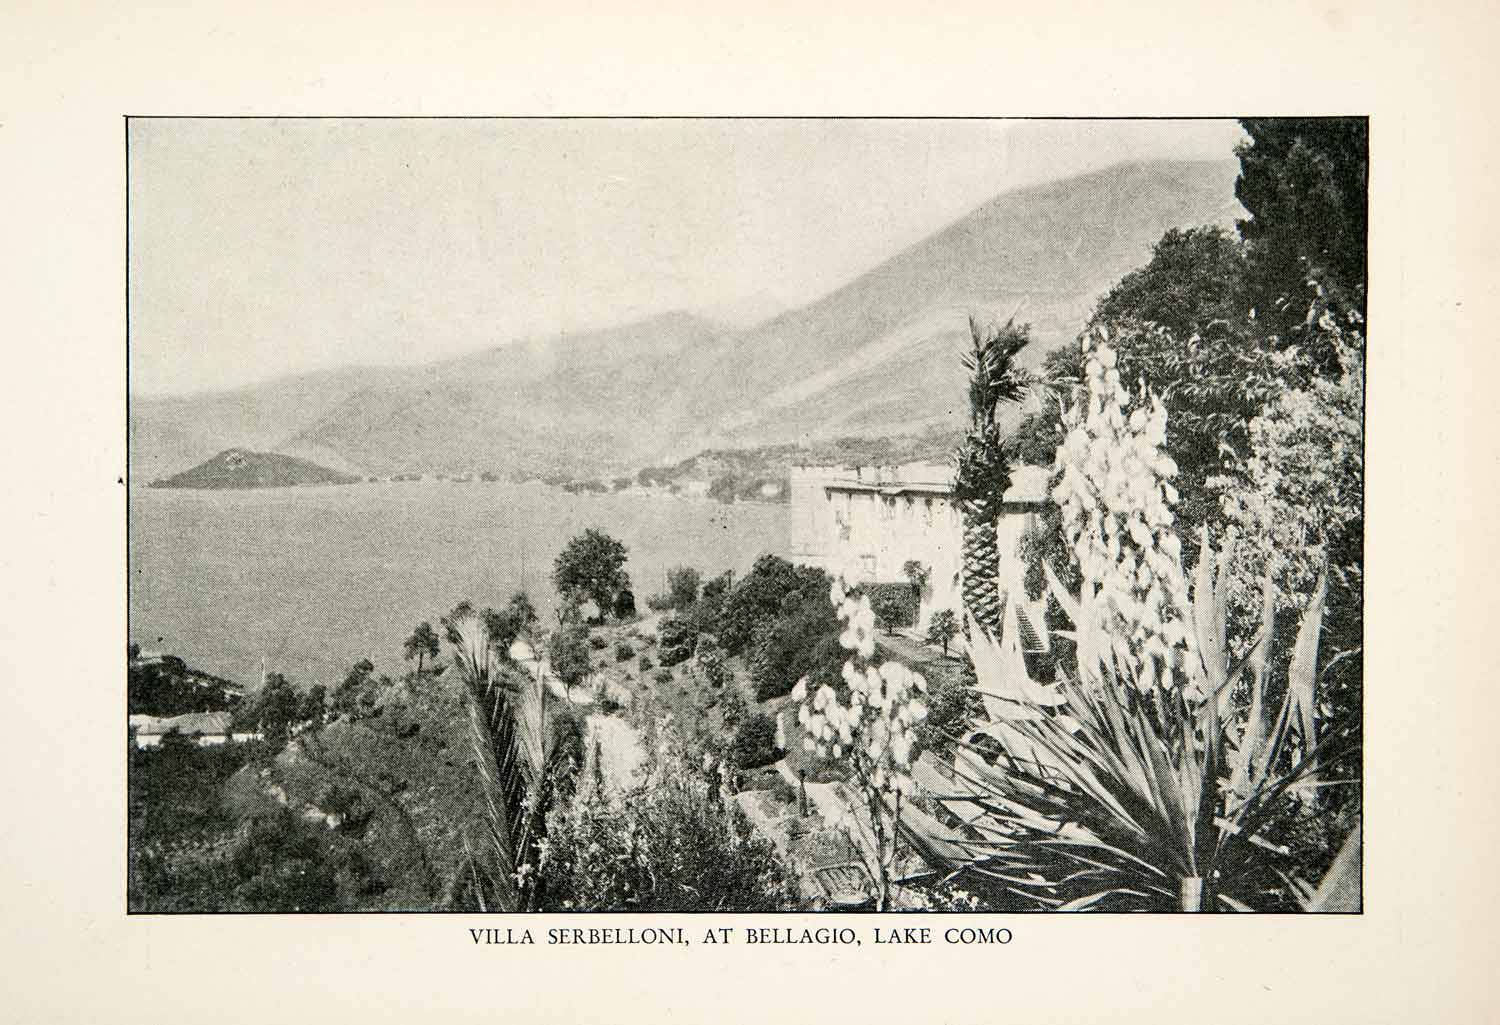 1927 Print Villa Serbelloni Bellagio Center Rockefeller Lake Como Italy XGDB9